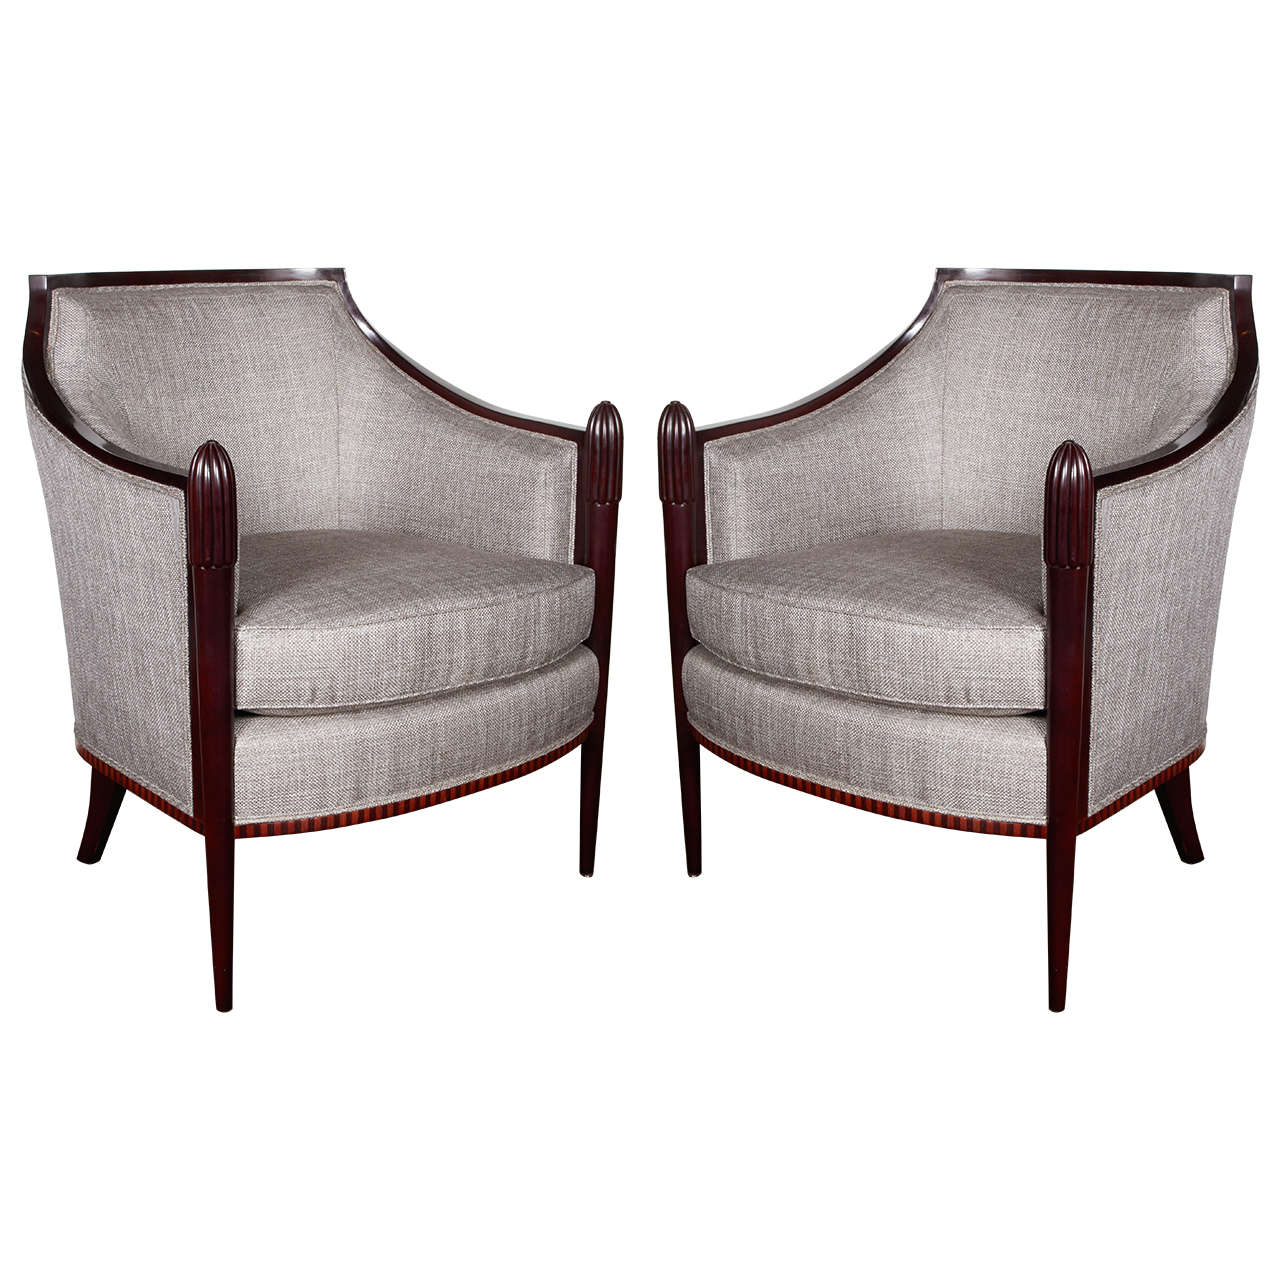 Furniture Cheap Accent Chairs With Arms Upholstered Swivel Chairs